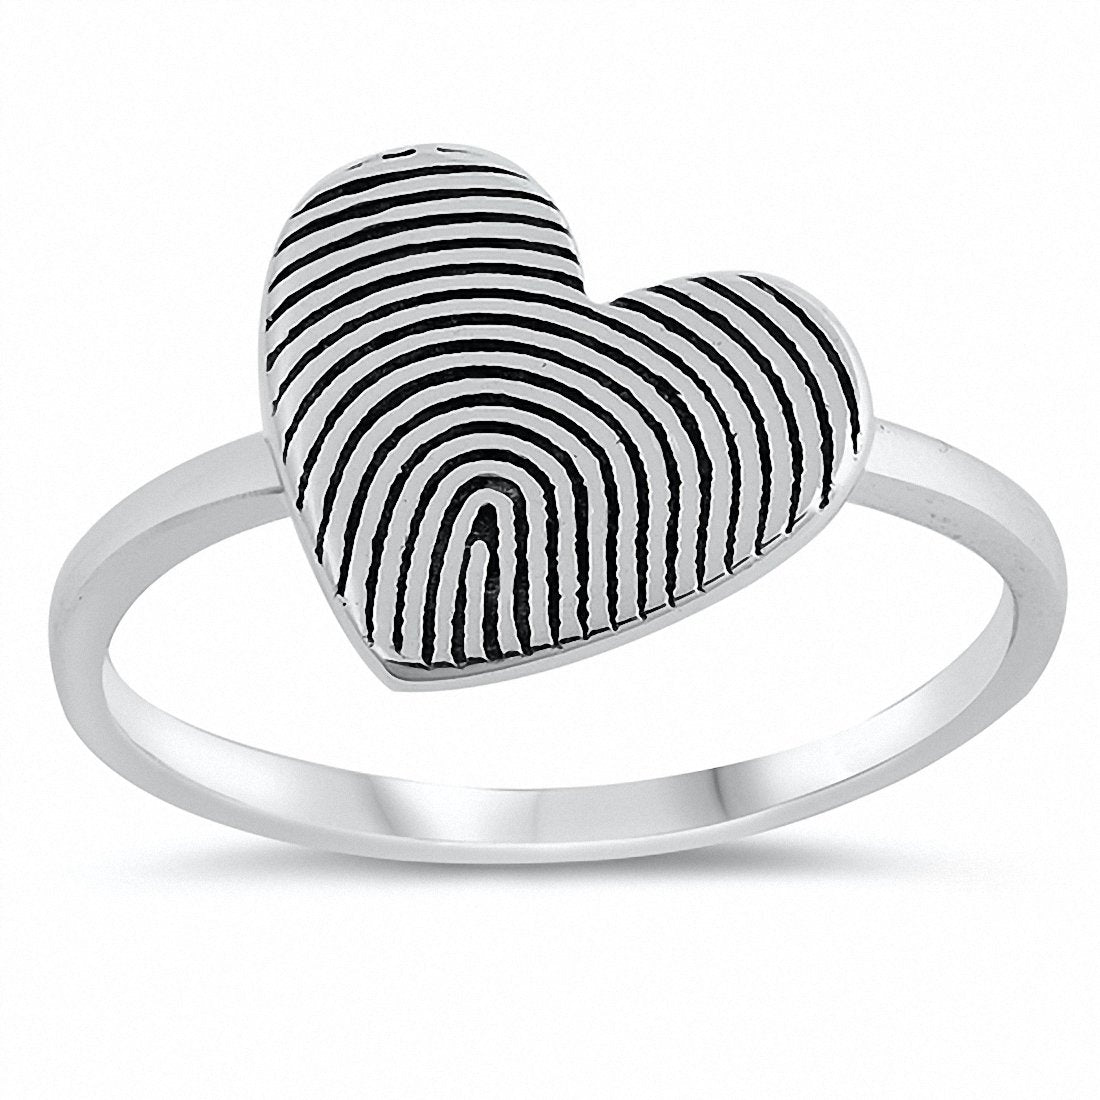 Oxidized Heart Ring Band 925 Sterling Silver Choose Color